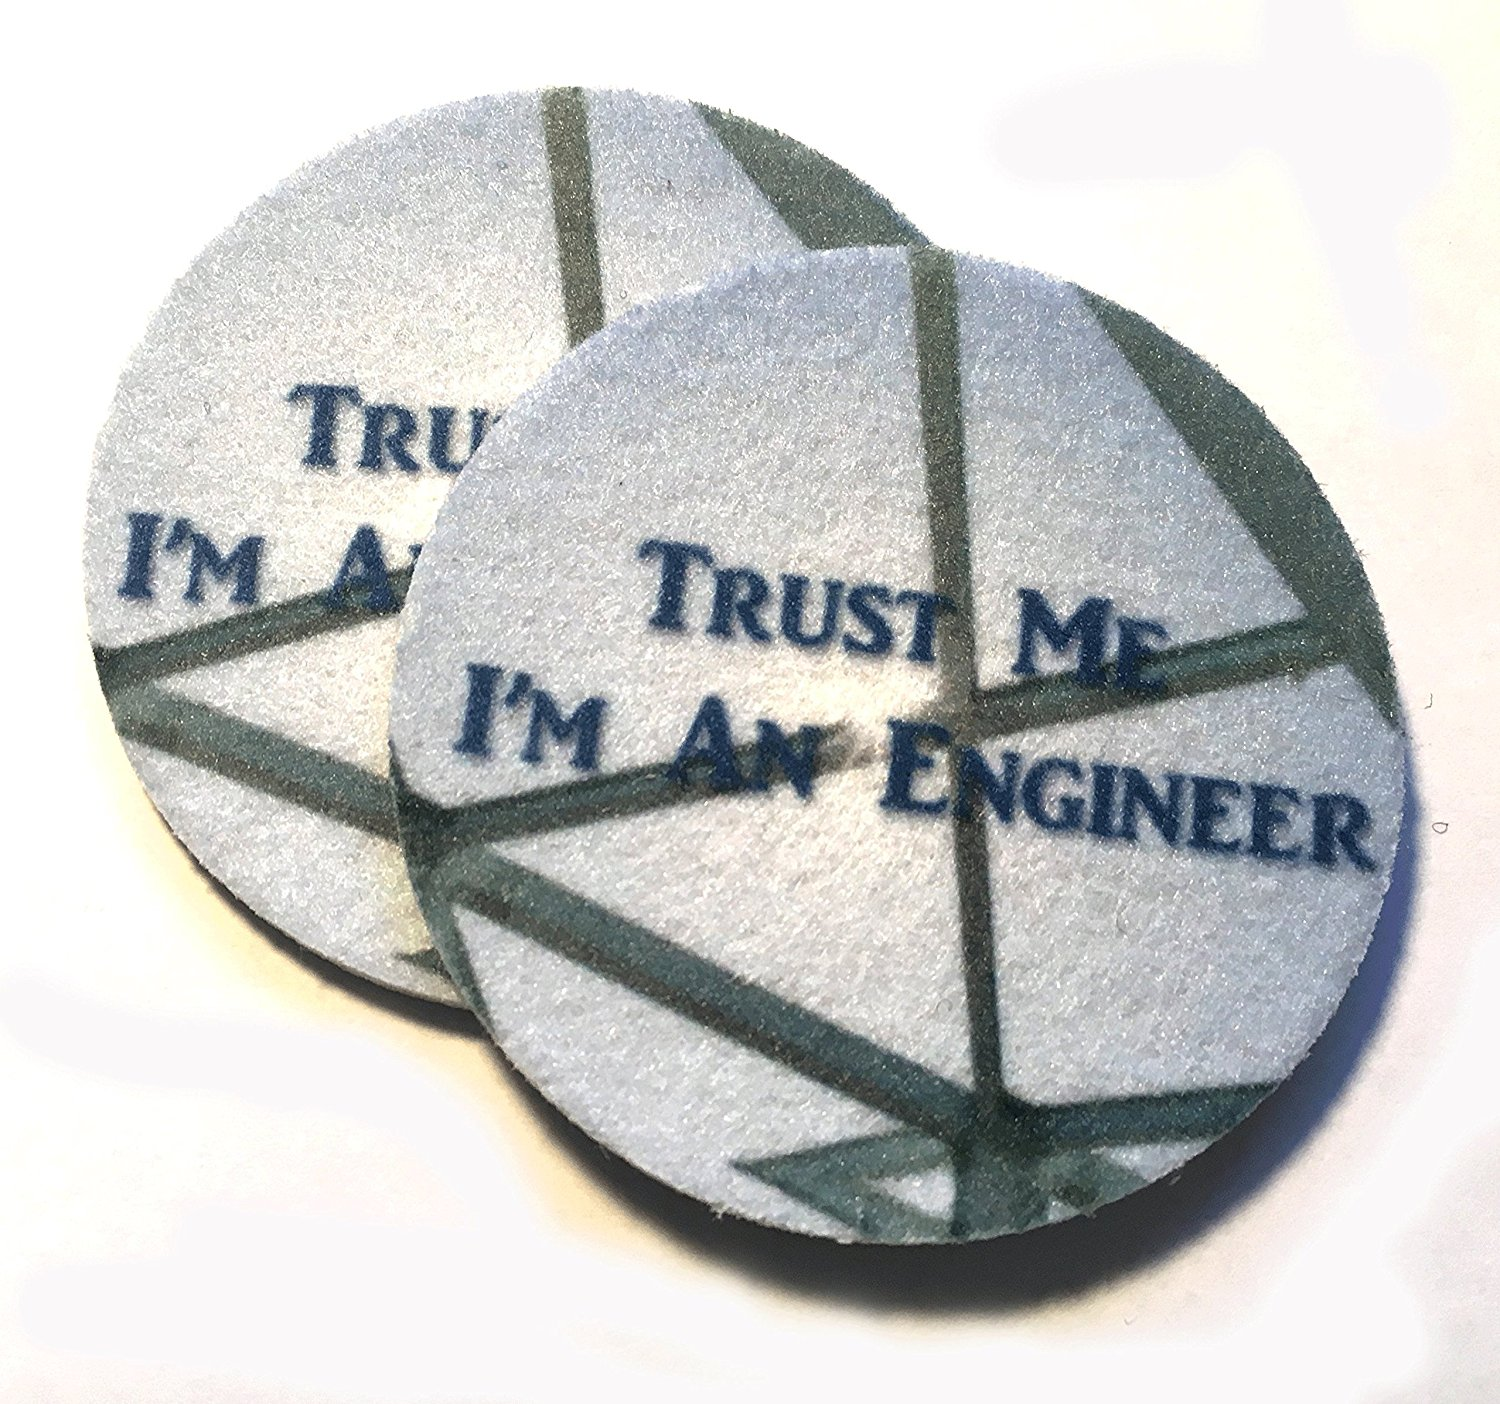 Car coasters for your car's cup holder - Trust Me I'm An Engineer - Set of two super absorbent car coaster